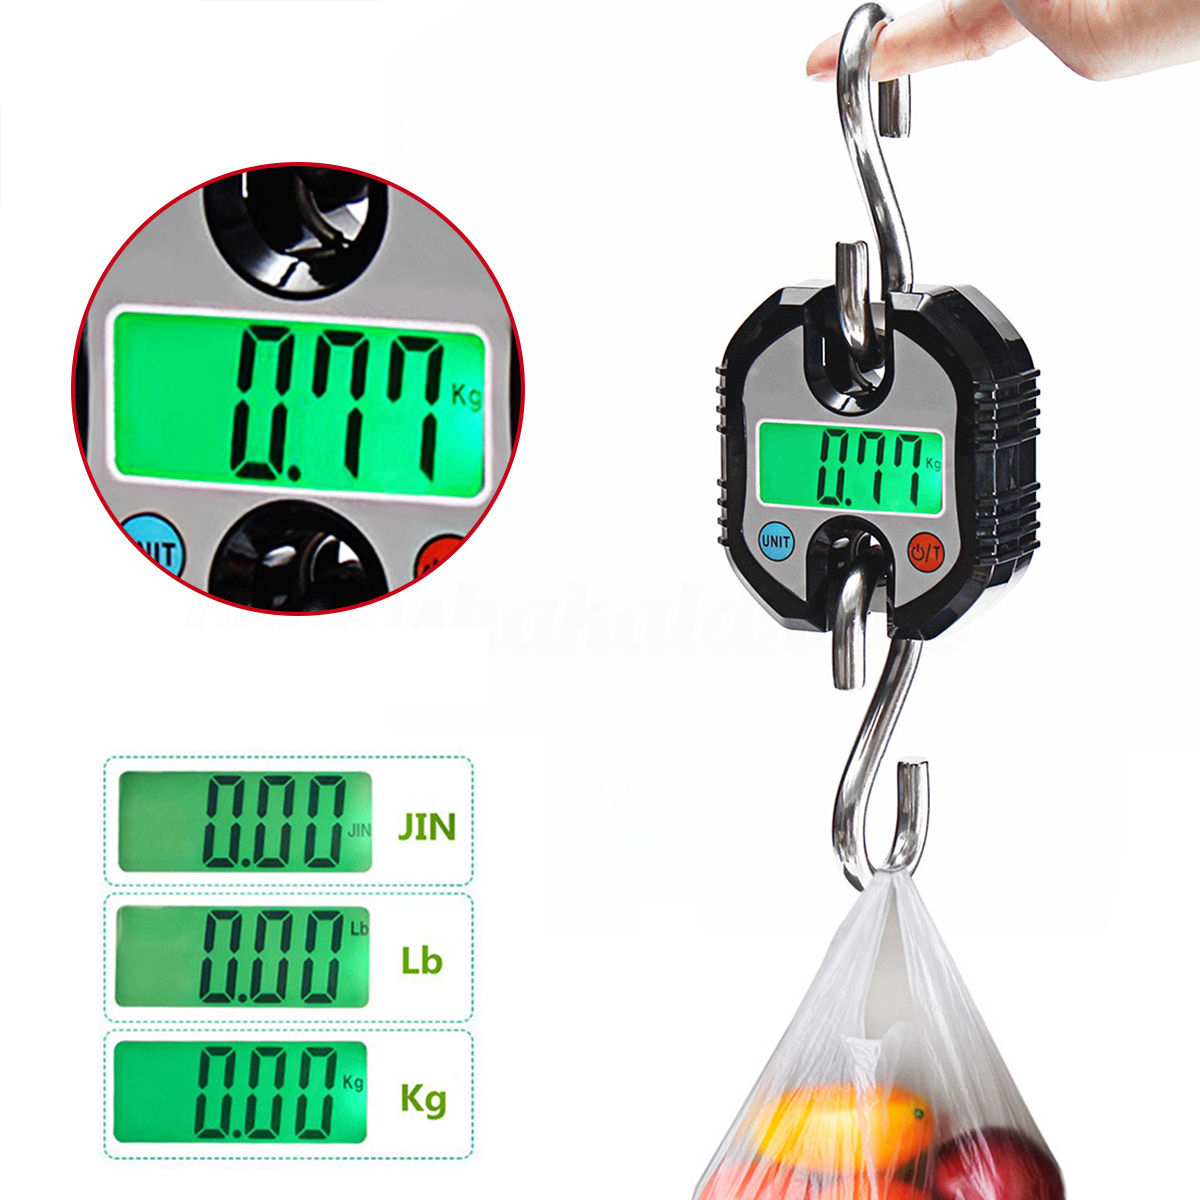 Portable Mini Crane Scale 150kg LCD Digital Weight Electronic Hanging Hook Scales Mayitr weight bilancia balanza digital scale balance scales electronic digital luggage scale portable hanging scale with hook strap new